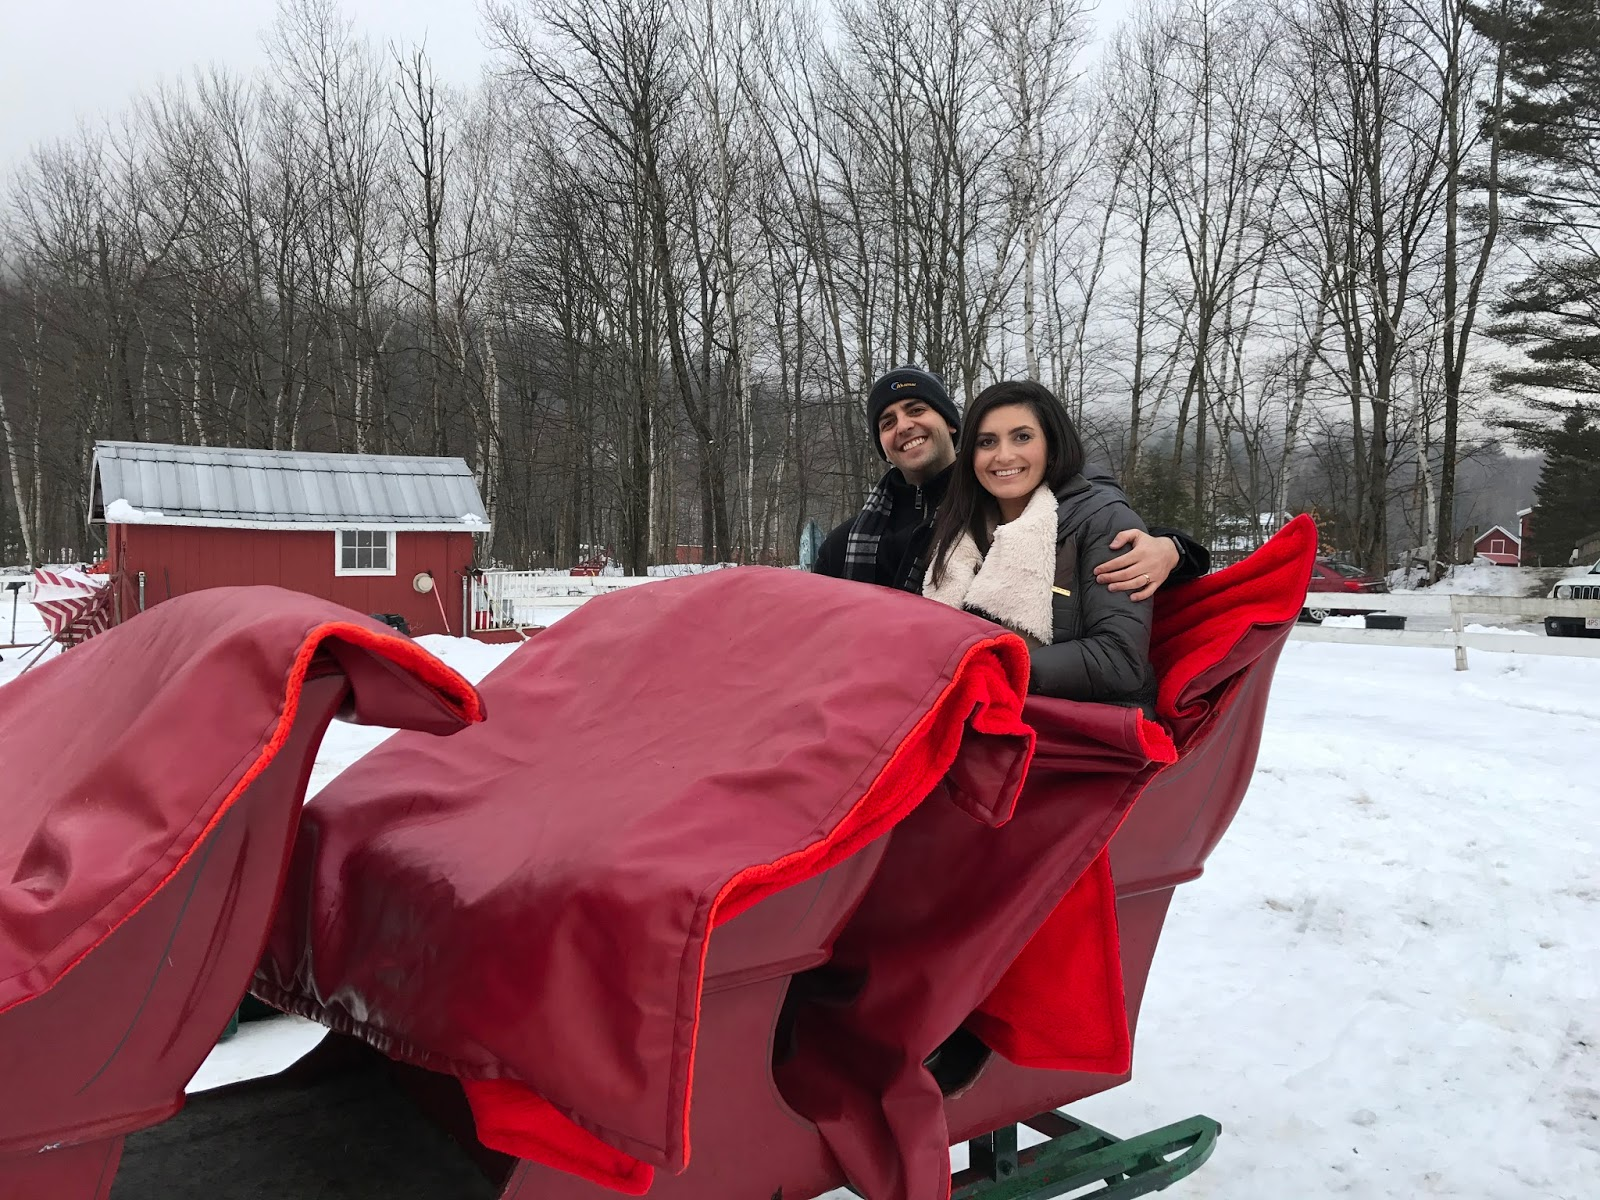 sleigh ride in vermont, gentle giants sleigh